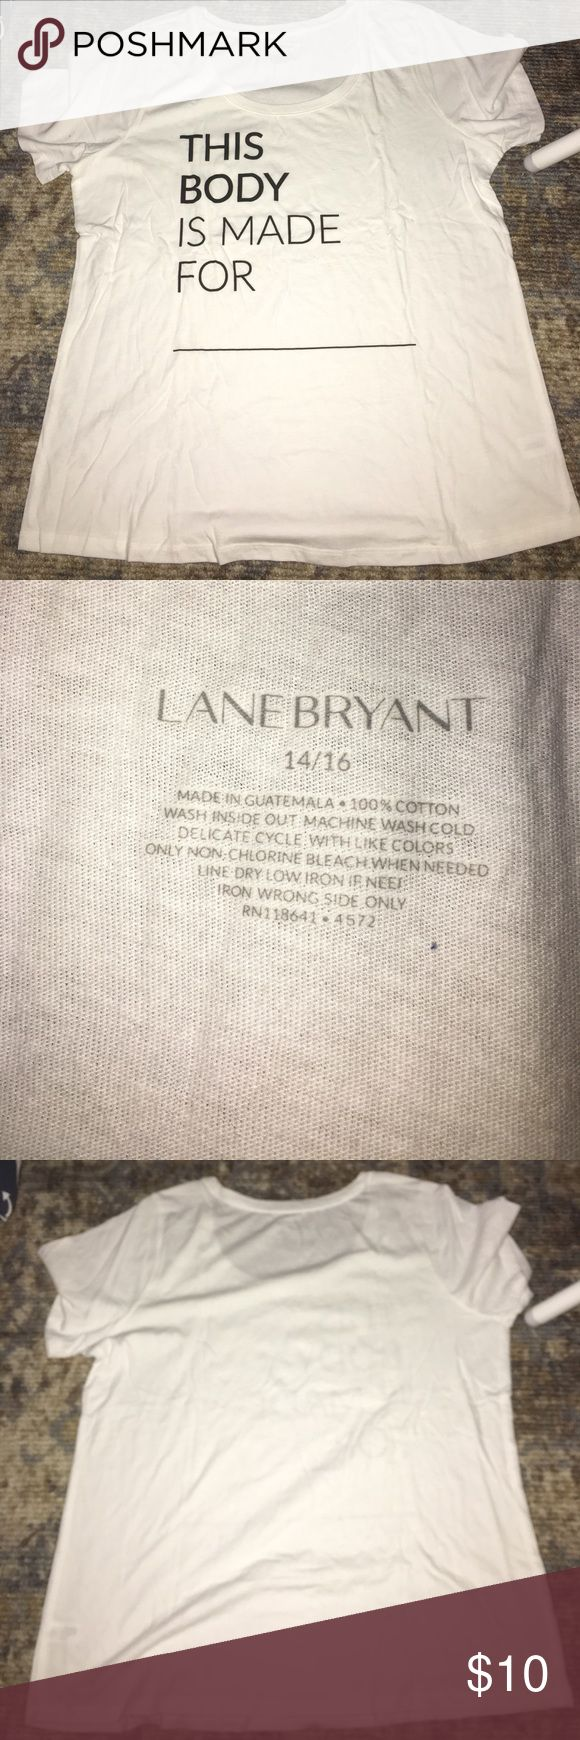 BN Lane Bryant Fashion Week tee 14/16 Brand new. Was given out at plus size fashion week show. Size 14/16. Pet free smoke free home. Super soft 100% cotton tee shirt. As seen on Ashlee Graham and Lane Bryant super models! Lane Bryant Tops Tees - Short Sleeve